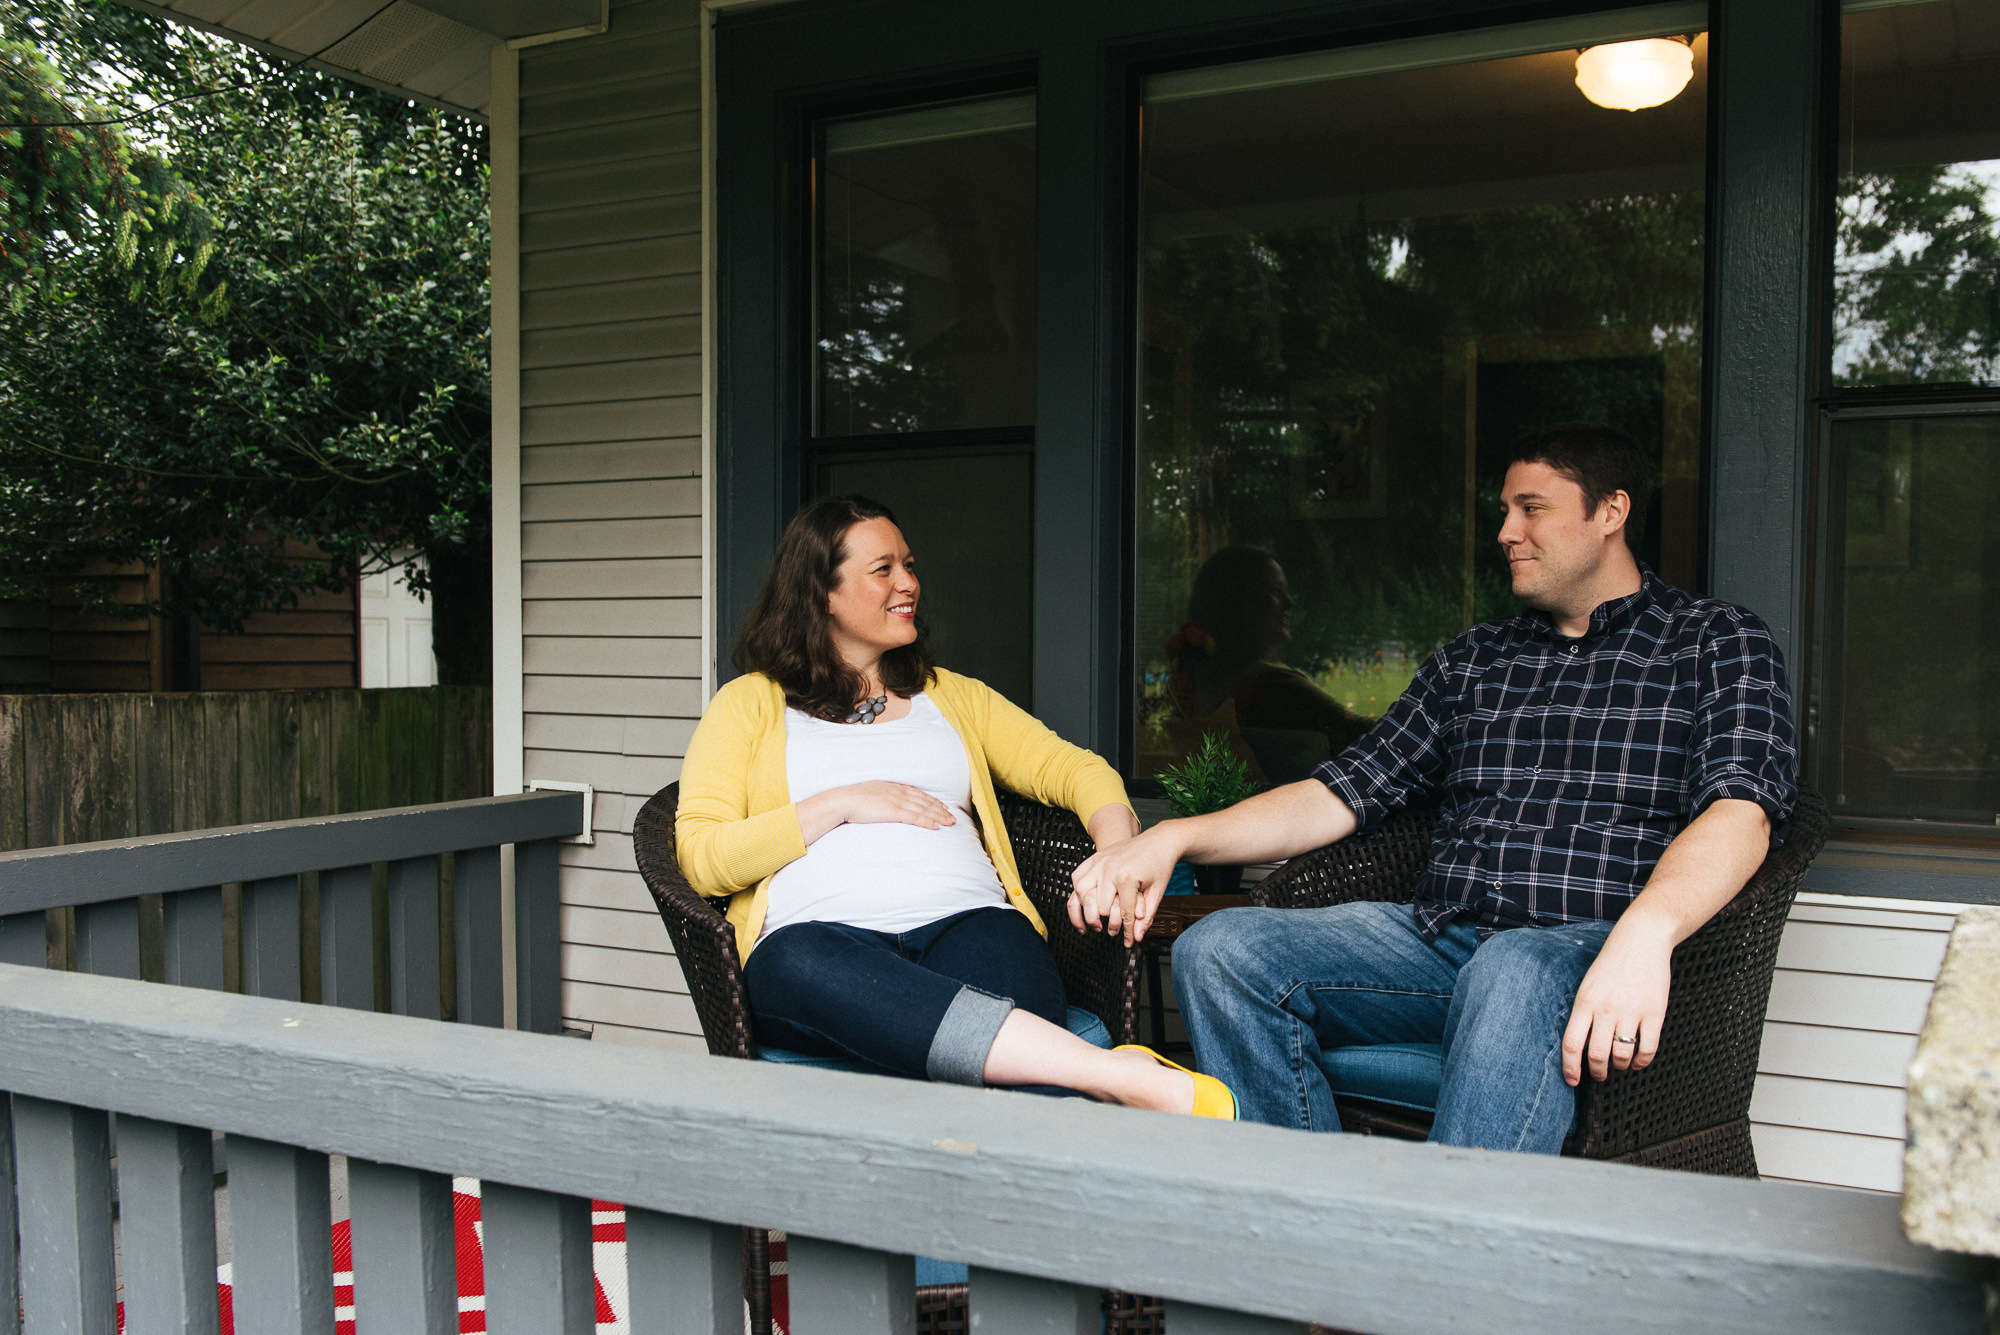 Expecting wife sitting on porch with husband